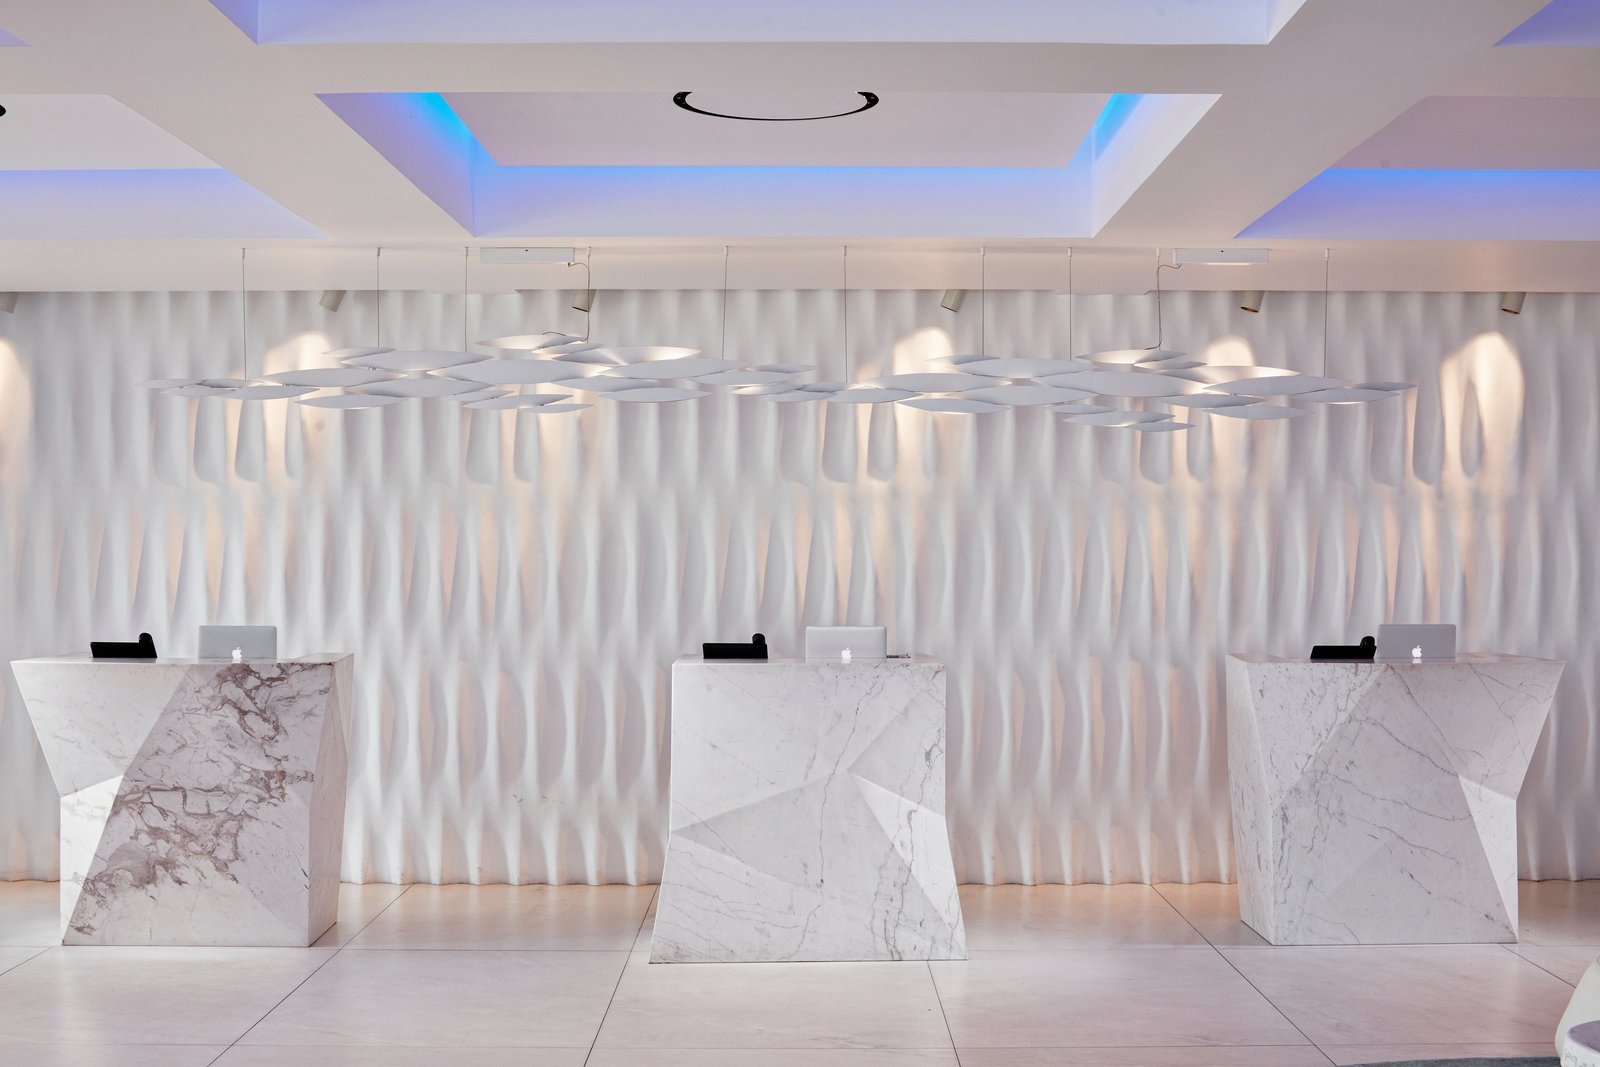 When you proceed to check in, you'll see that Mahmoud had large blocks of marble carved into sharp geometric shapes to contrast against the more classic, softer lines.